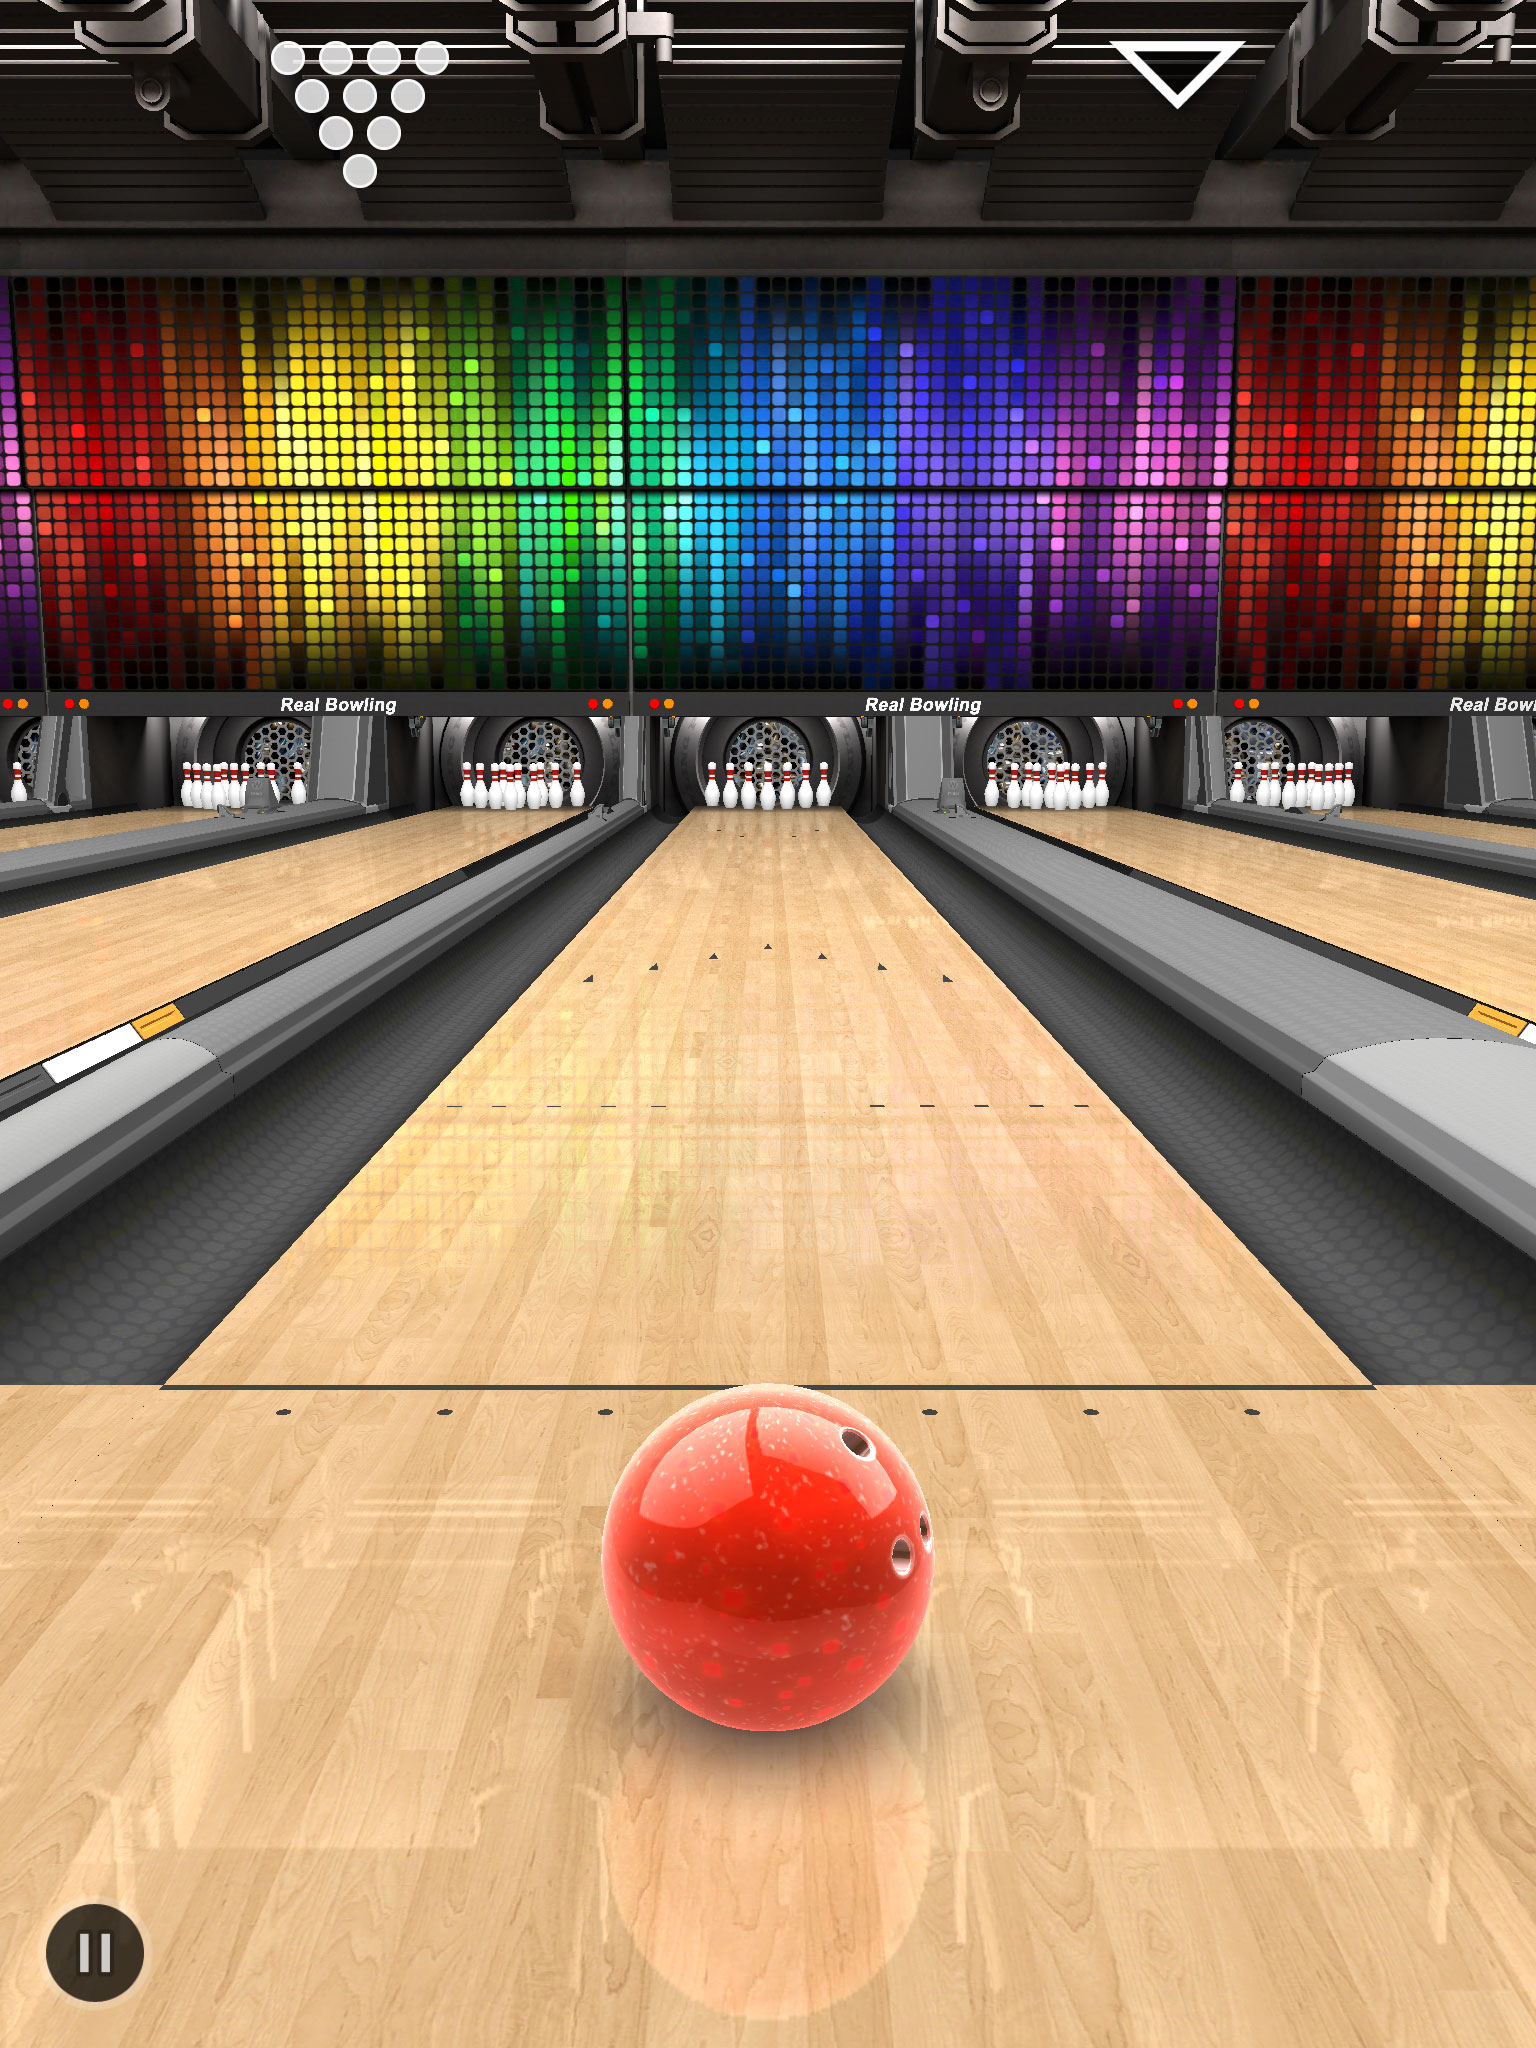 Real Bowling 3d Ios Android Eivaagames